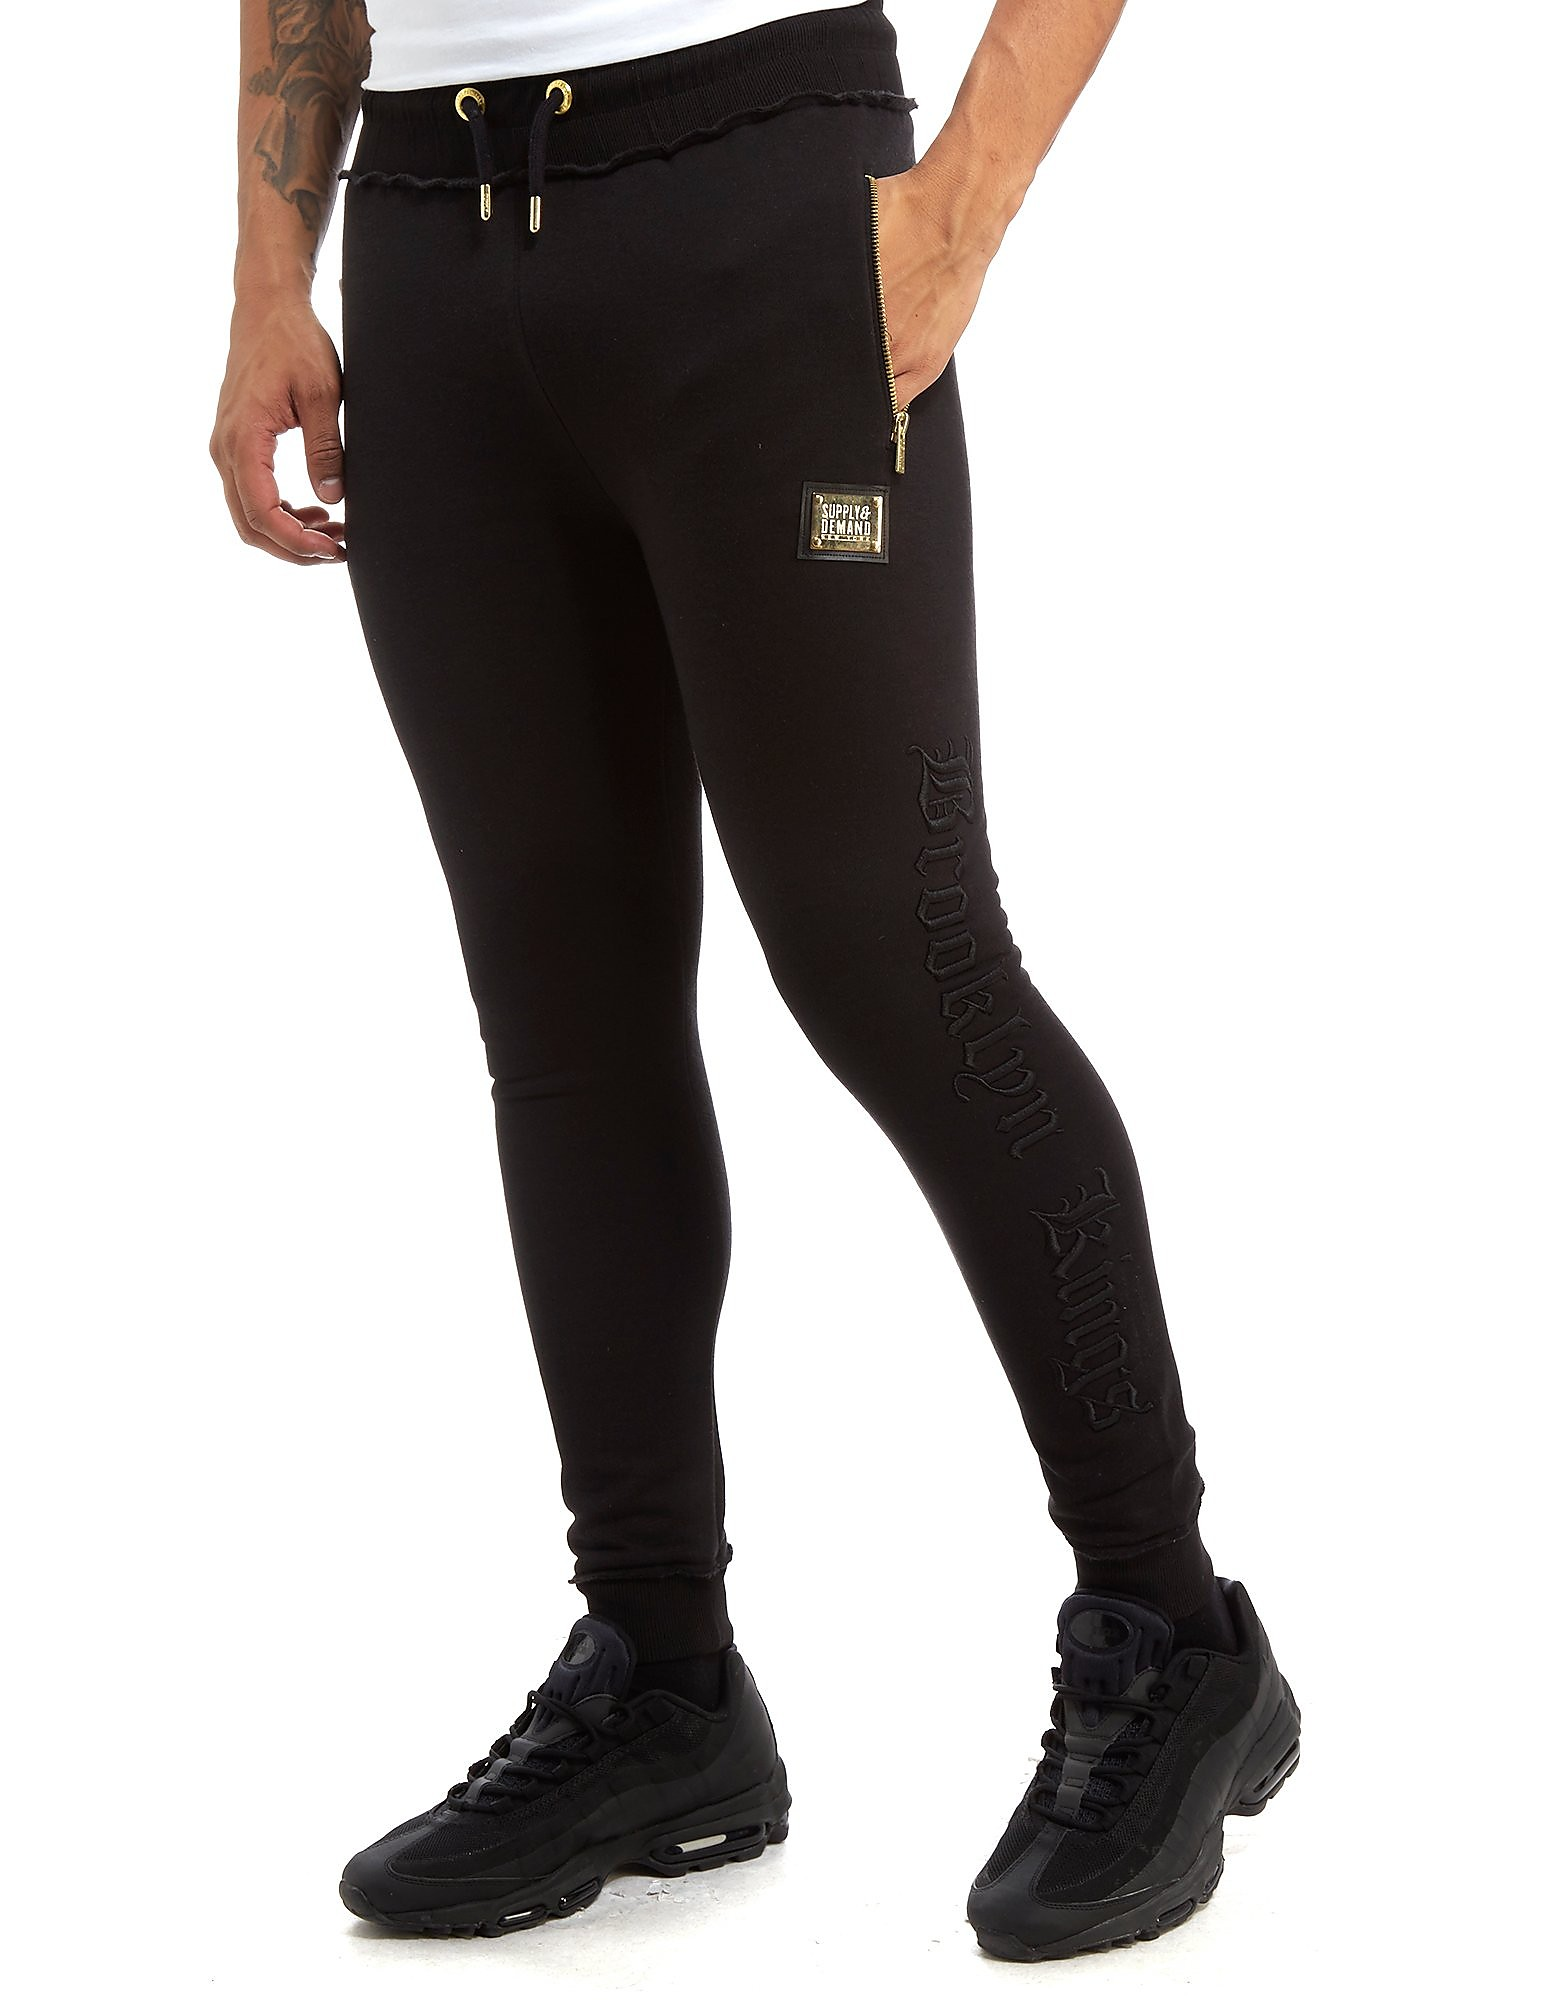 Supply & Demand Joggers Observe Homme